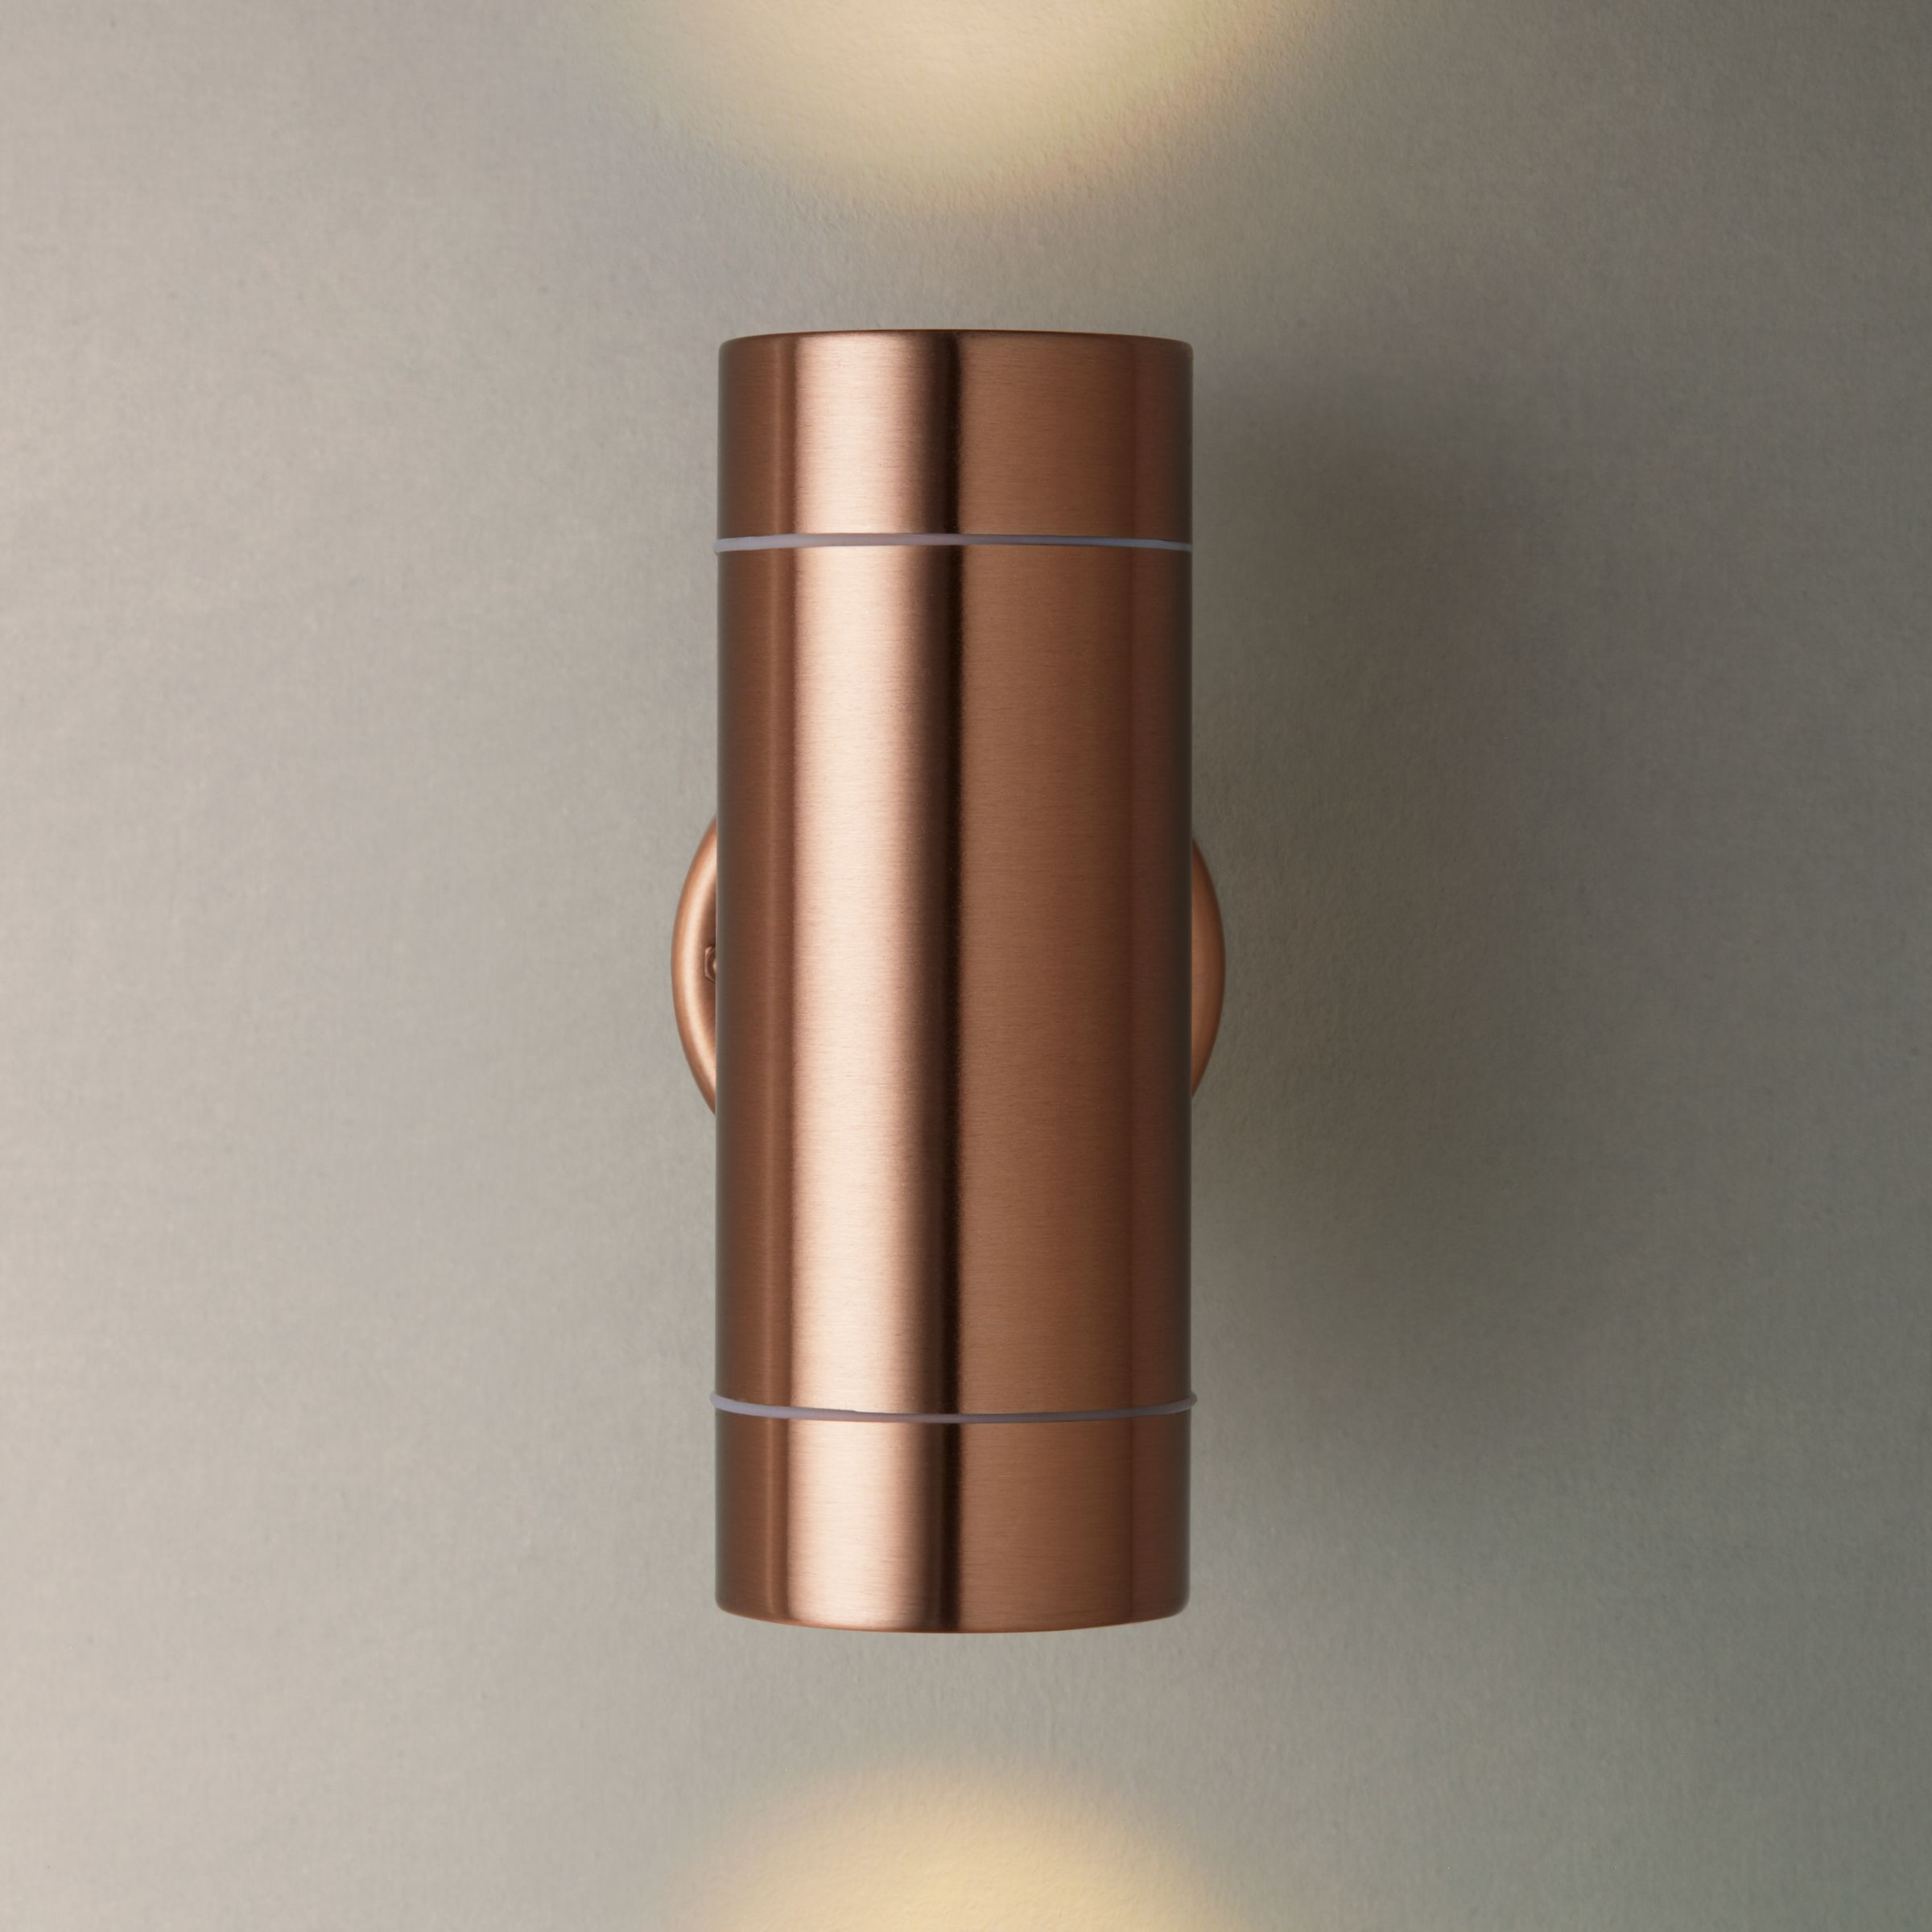 Buy John Lewis Sabrebeam Outdoor Double Wall Light with 2x3.5W GU10 LED Bulbs John Lewis